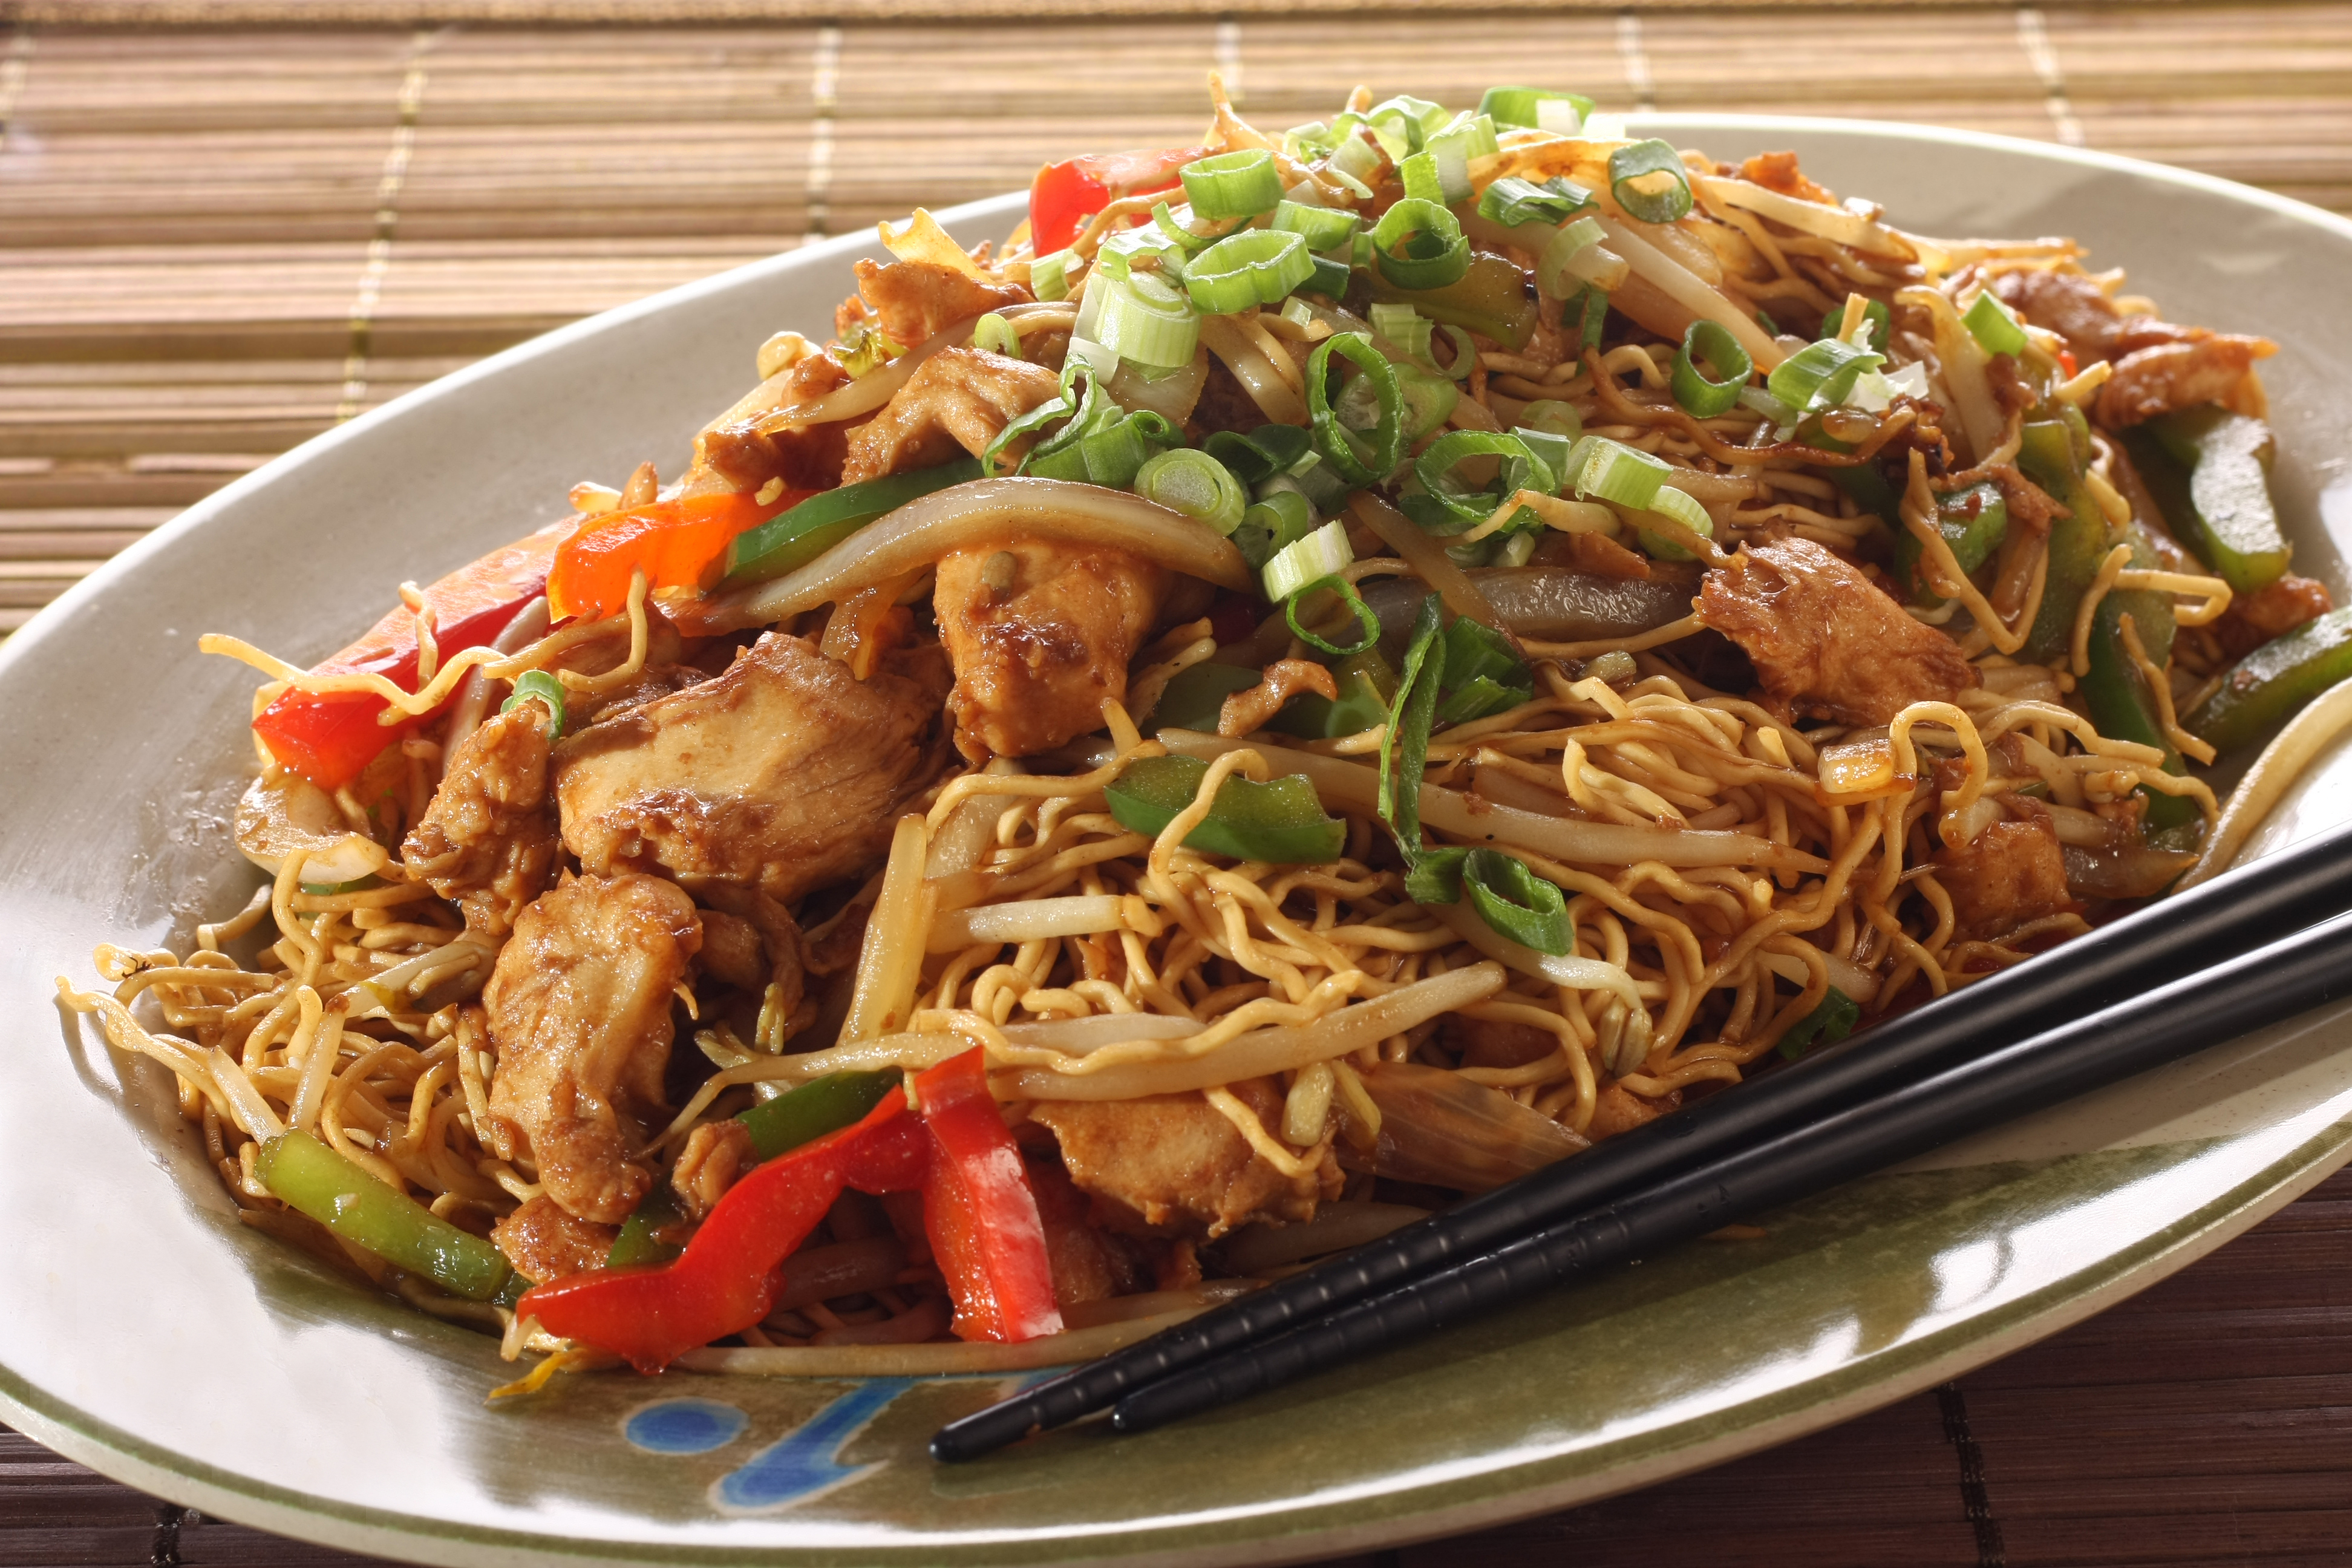 In Newfoundland, You Have to Ask for Noodles in Your Chow Mein